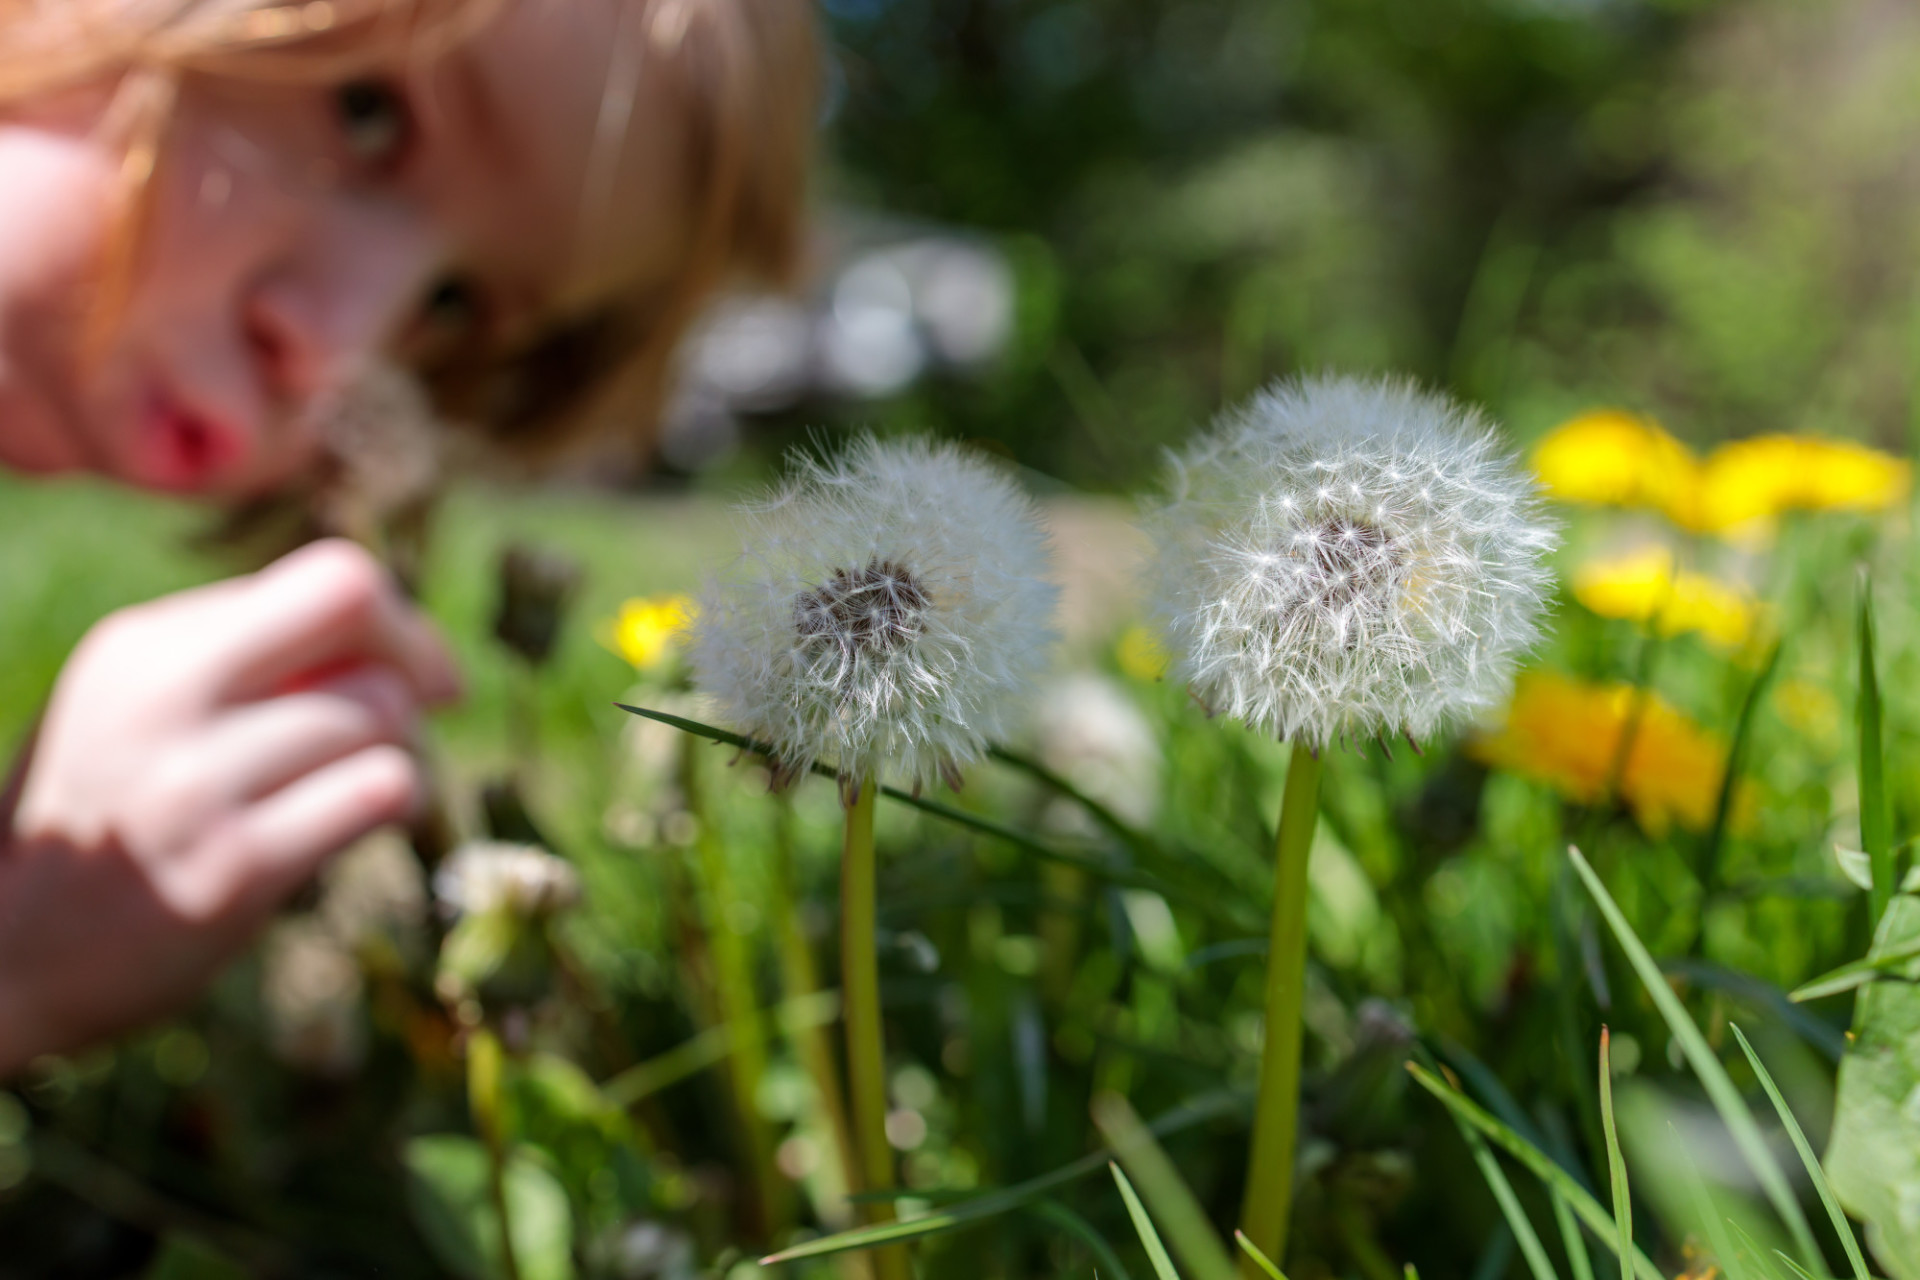 Children love dandelions